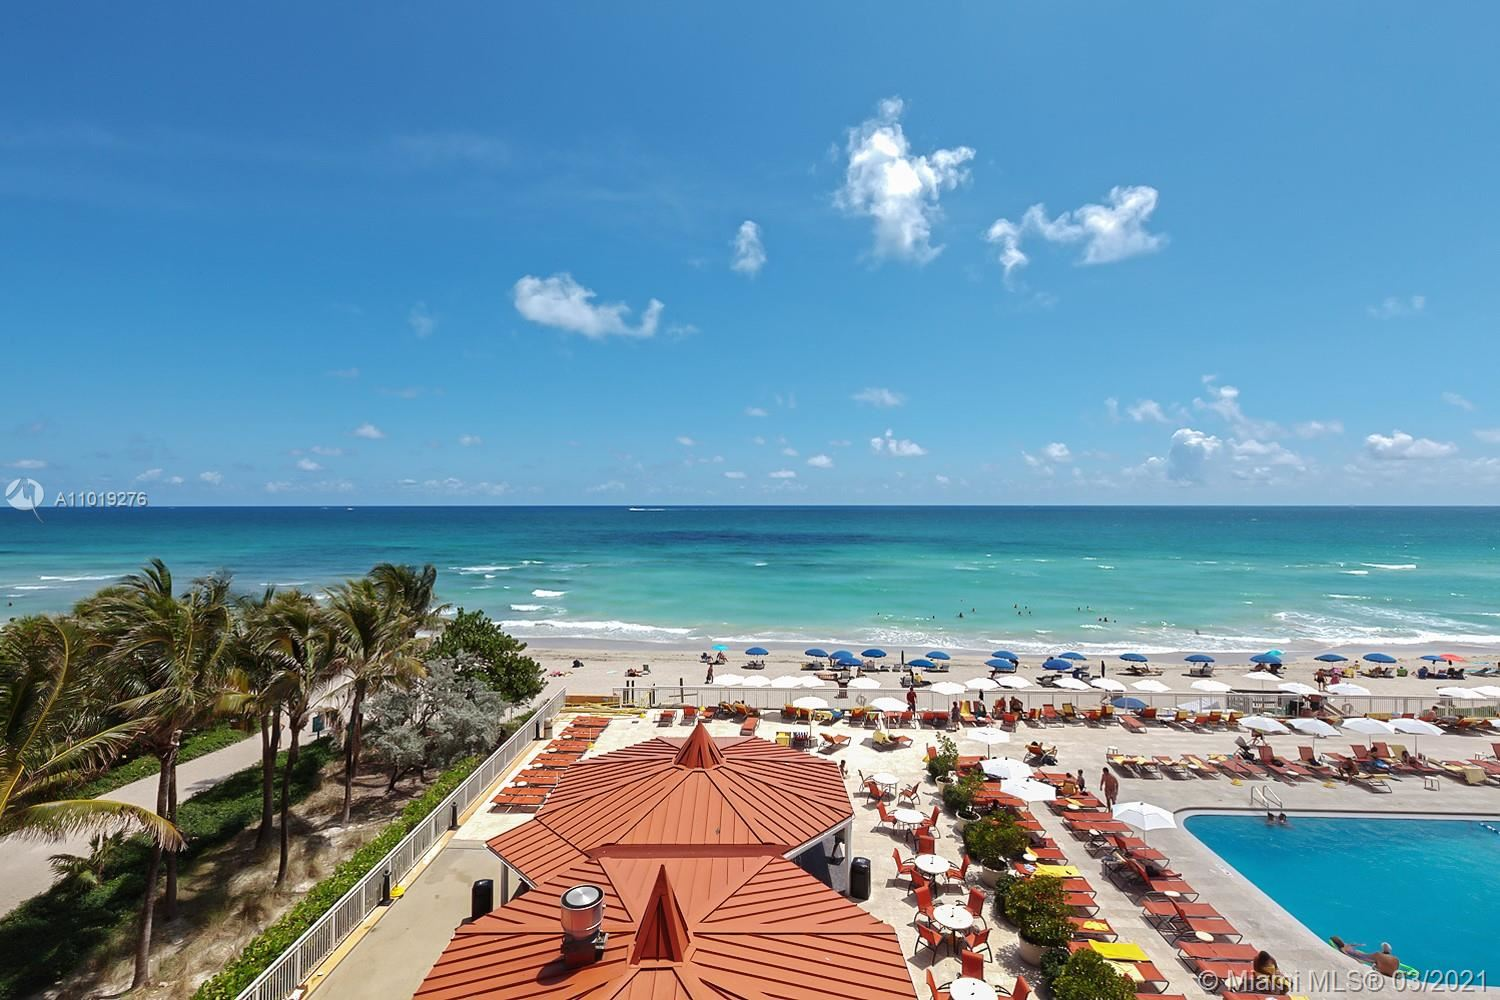 19201 Collins Ave #316, Sunny Isles, FL 33160 - #: A11019276